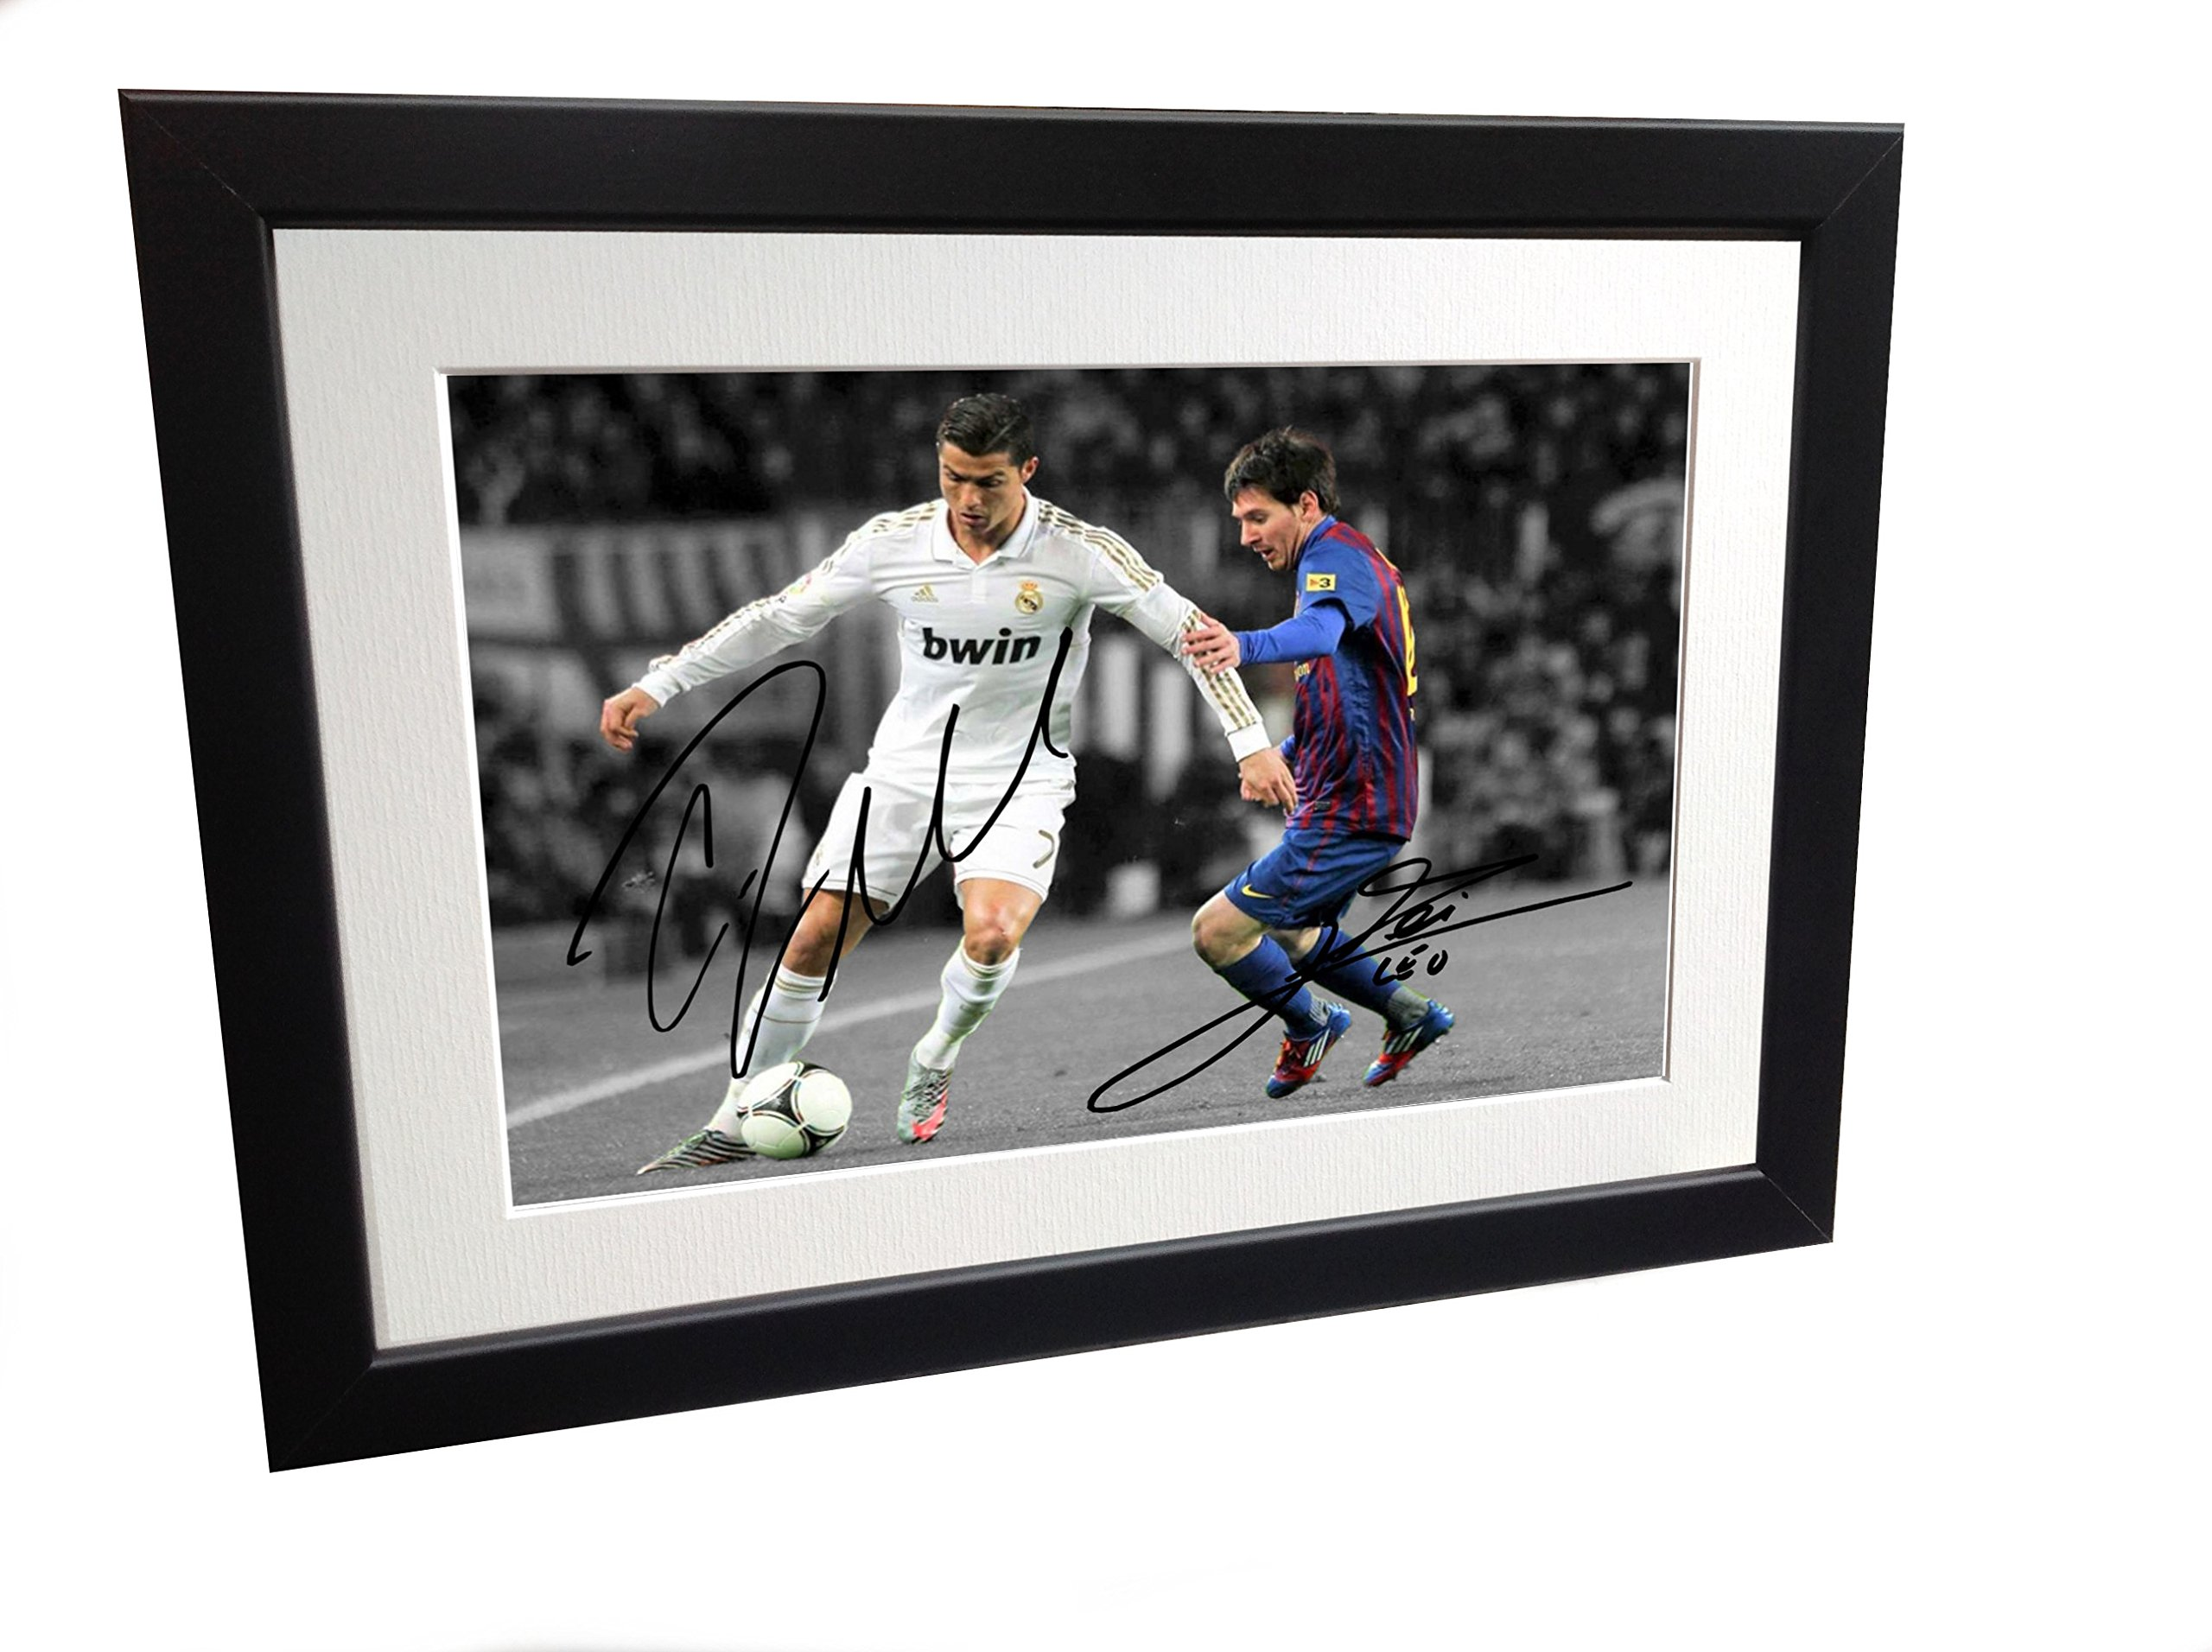 Signed Black Soccer Cristiano Ronaldo Real Madrid Lionel Messi Barcelona Autographed Photo Photograph Picture Frame Gift SM